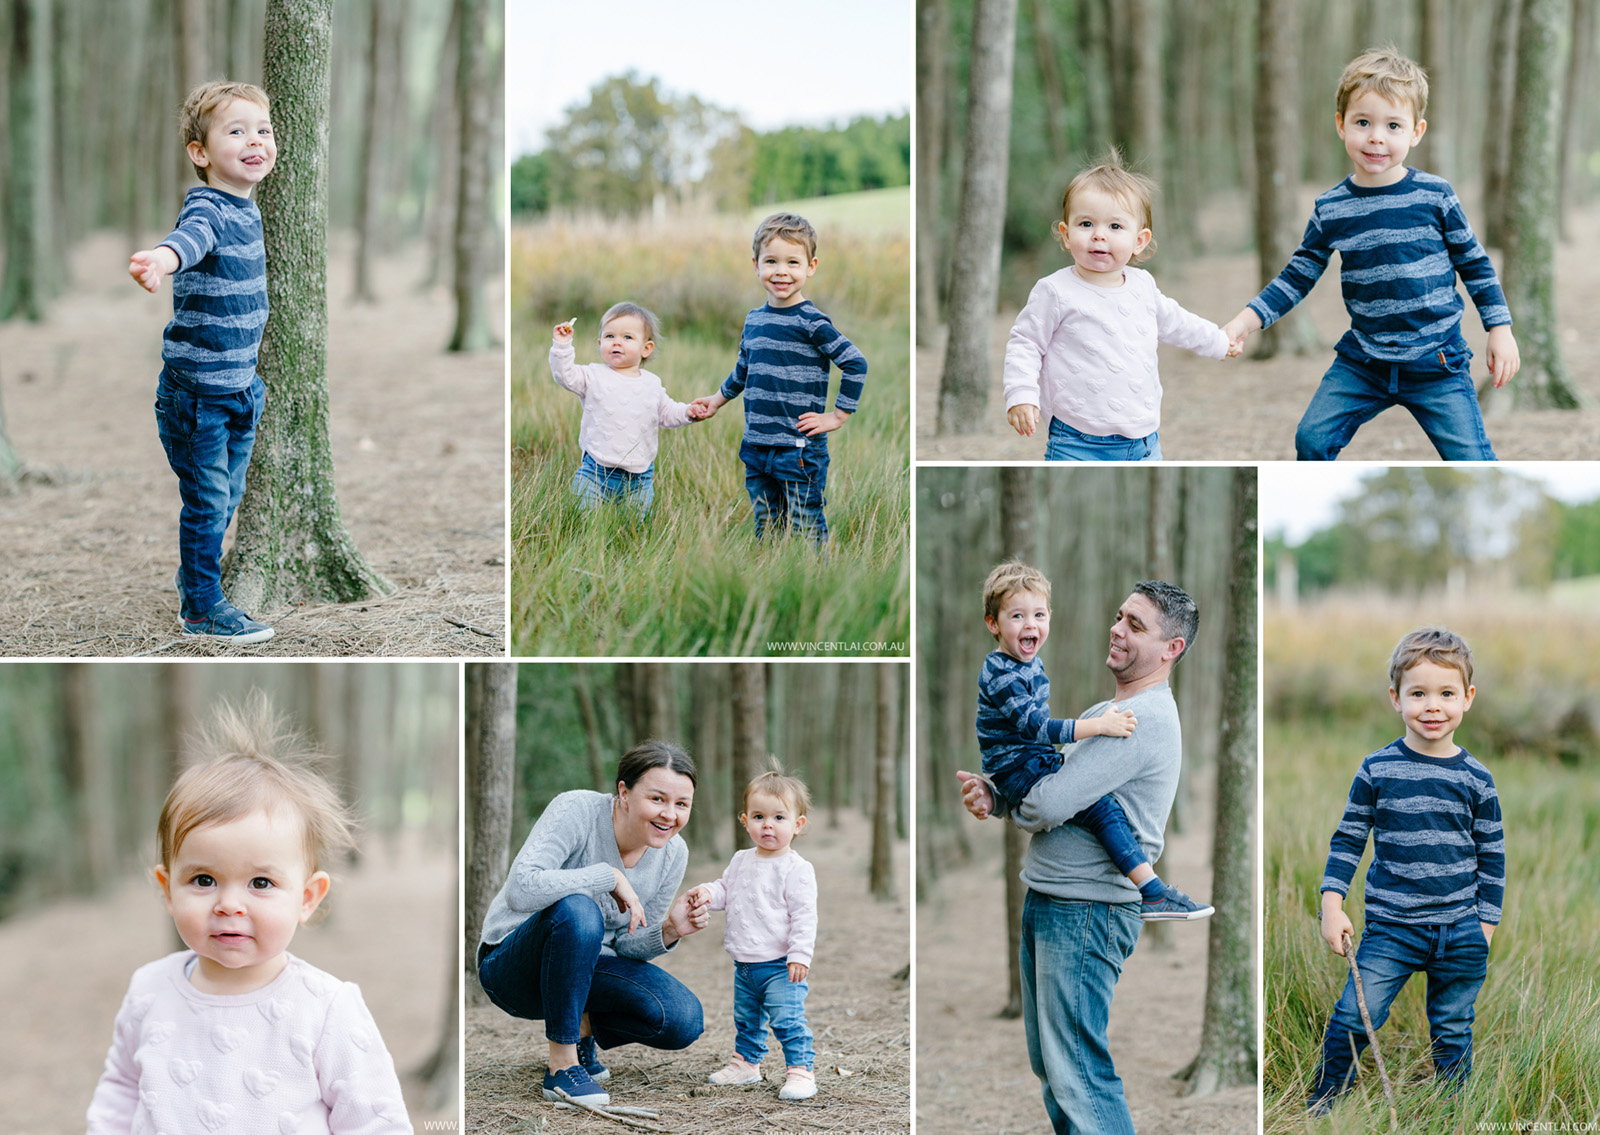 Winter Family Photo Session at Bicentennial Park Homebush